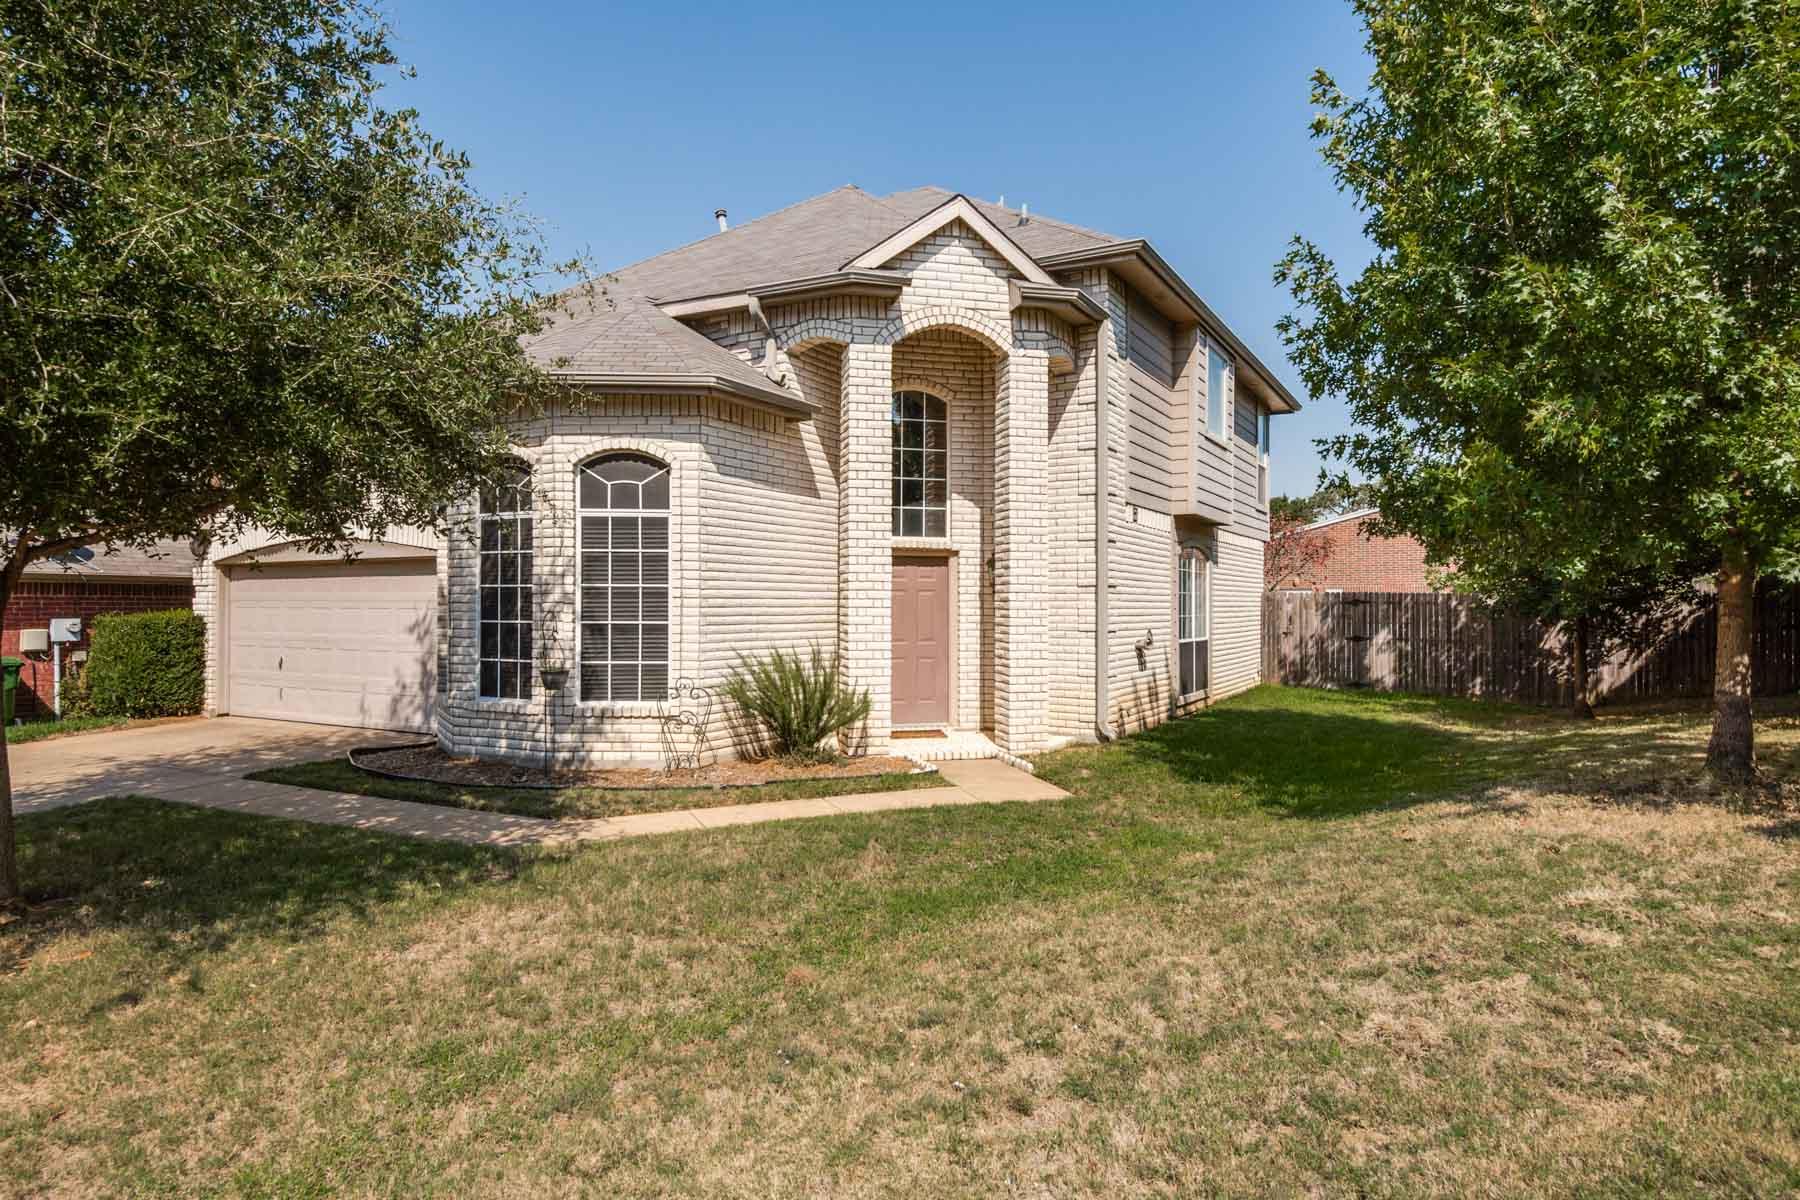 Single Family Home for Sale at Solid Investment Home in Flower Mound 1800 Stanton Ct Flower Mound, Texas 75028 United States